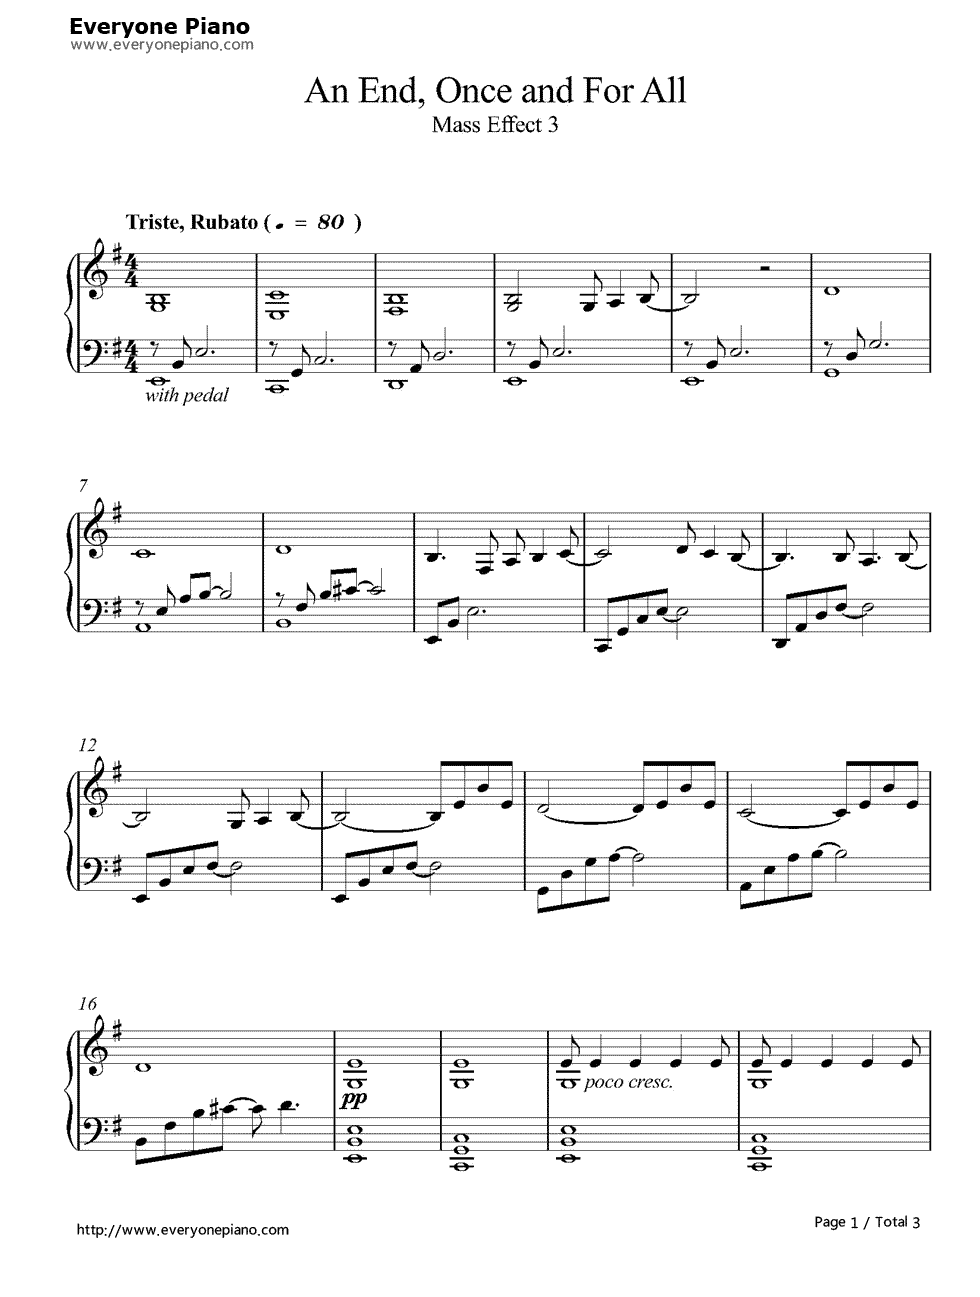 end,once and for all-质量效应3五线谱预览1